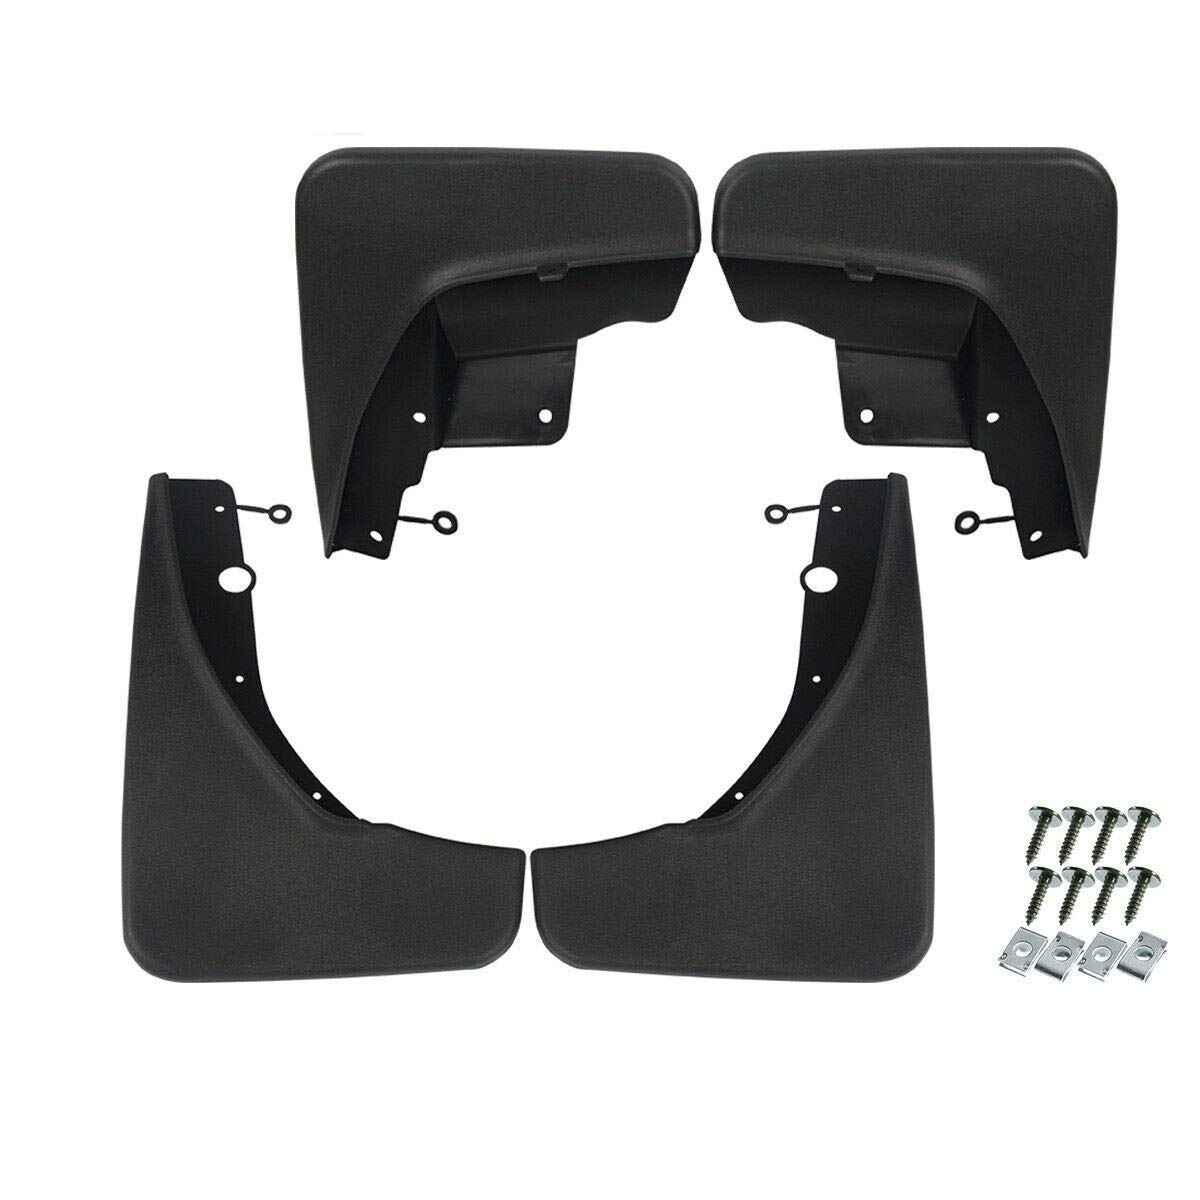 Set of 4 Front and Rear Mud Flaps Splash Guards for Jeep Grand Cherokee 2011-2020